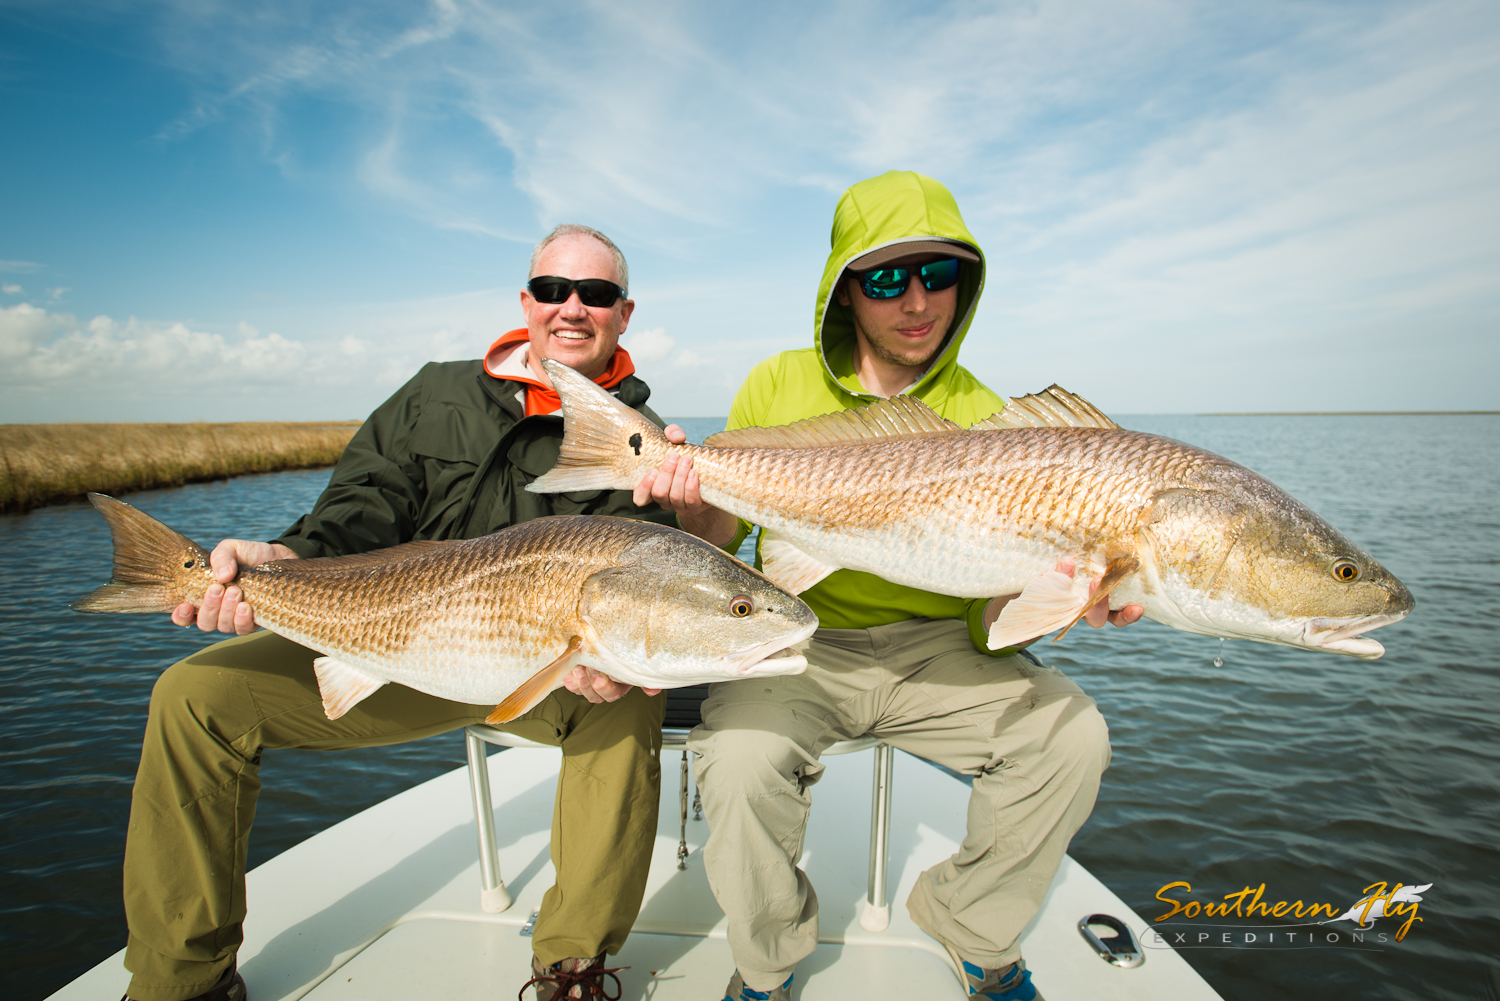 Fly fishing hopedale louisiana with captain brandon keck and southern fly expeditions of Louisiana